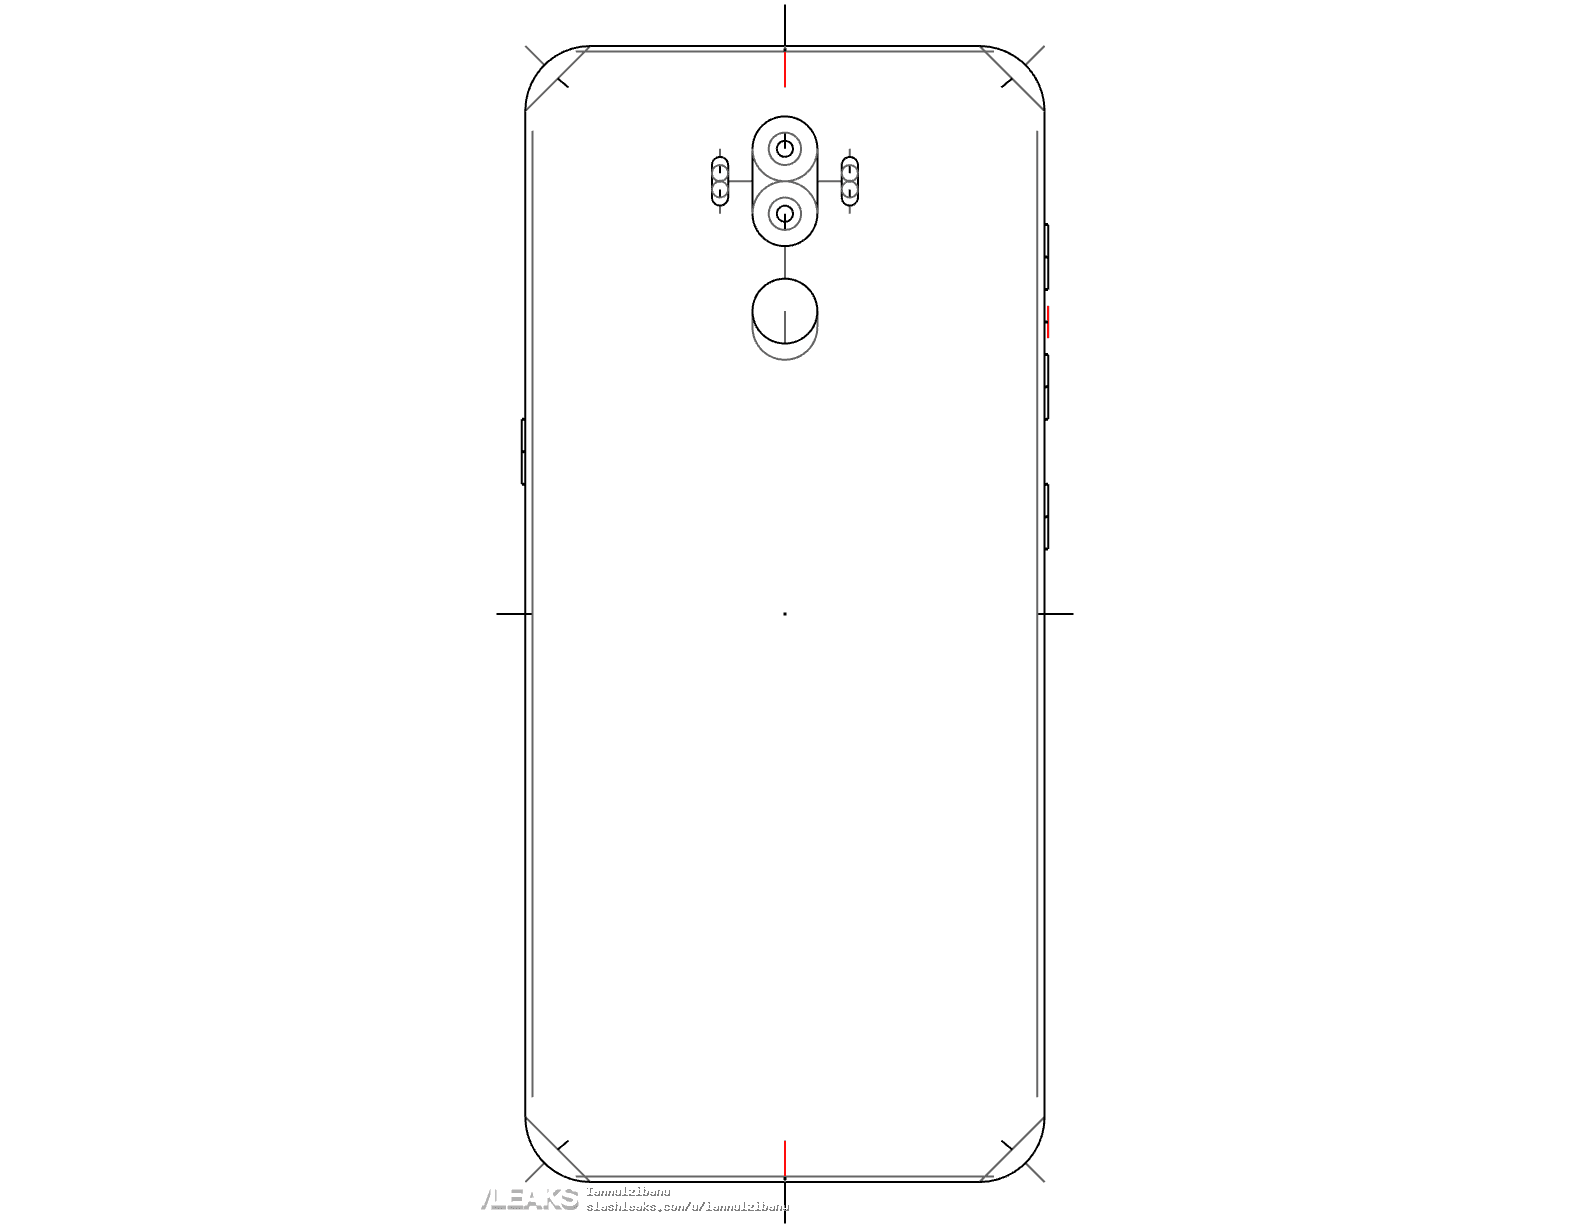 Galaxy Note 8 SlashLeaks Schematics 1